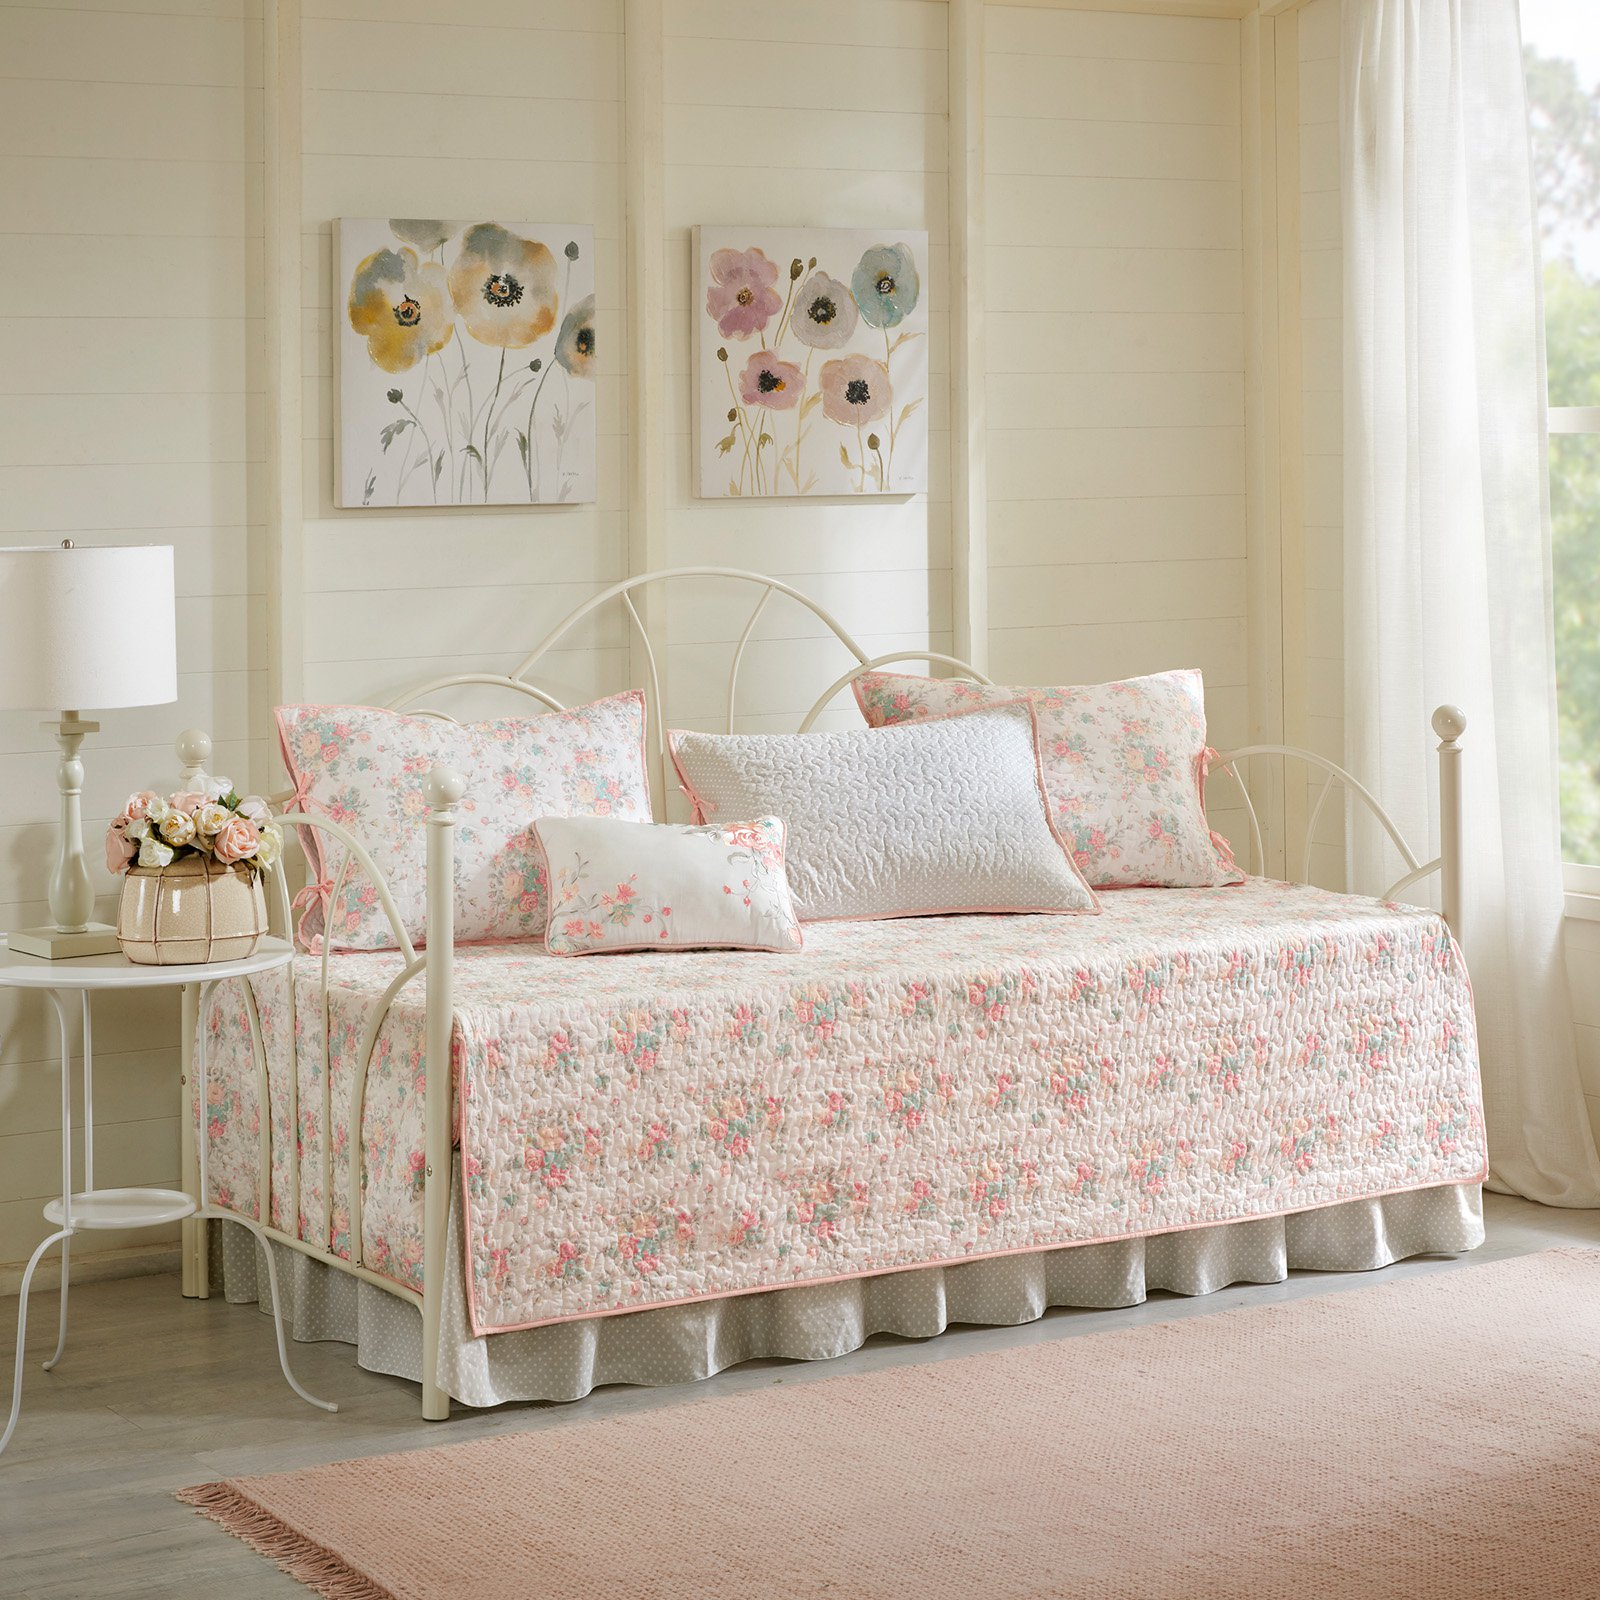 Serendipity 6 Piece Cotton Percale Daybed Cover Set by